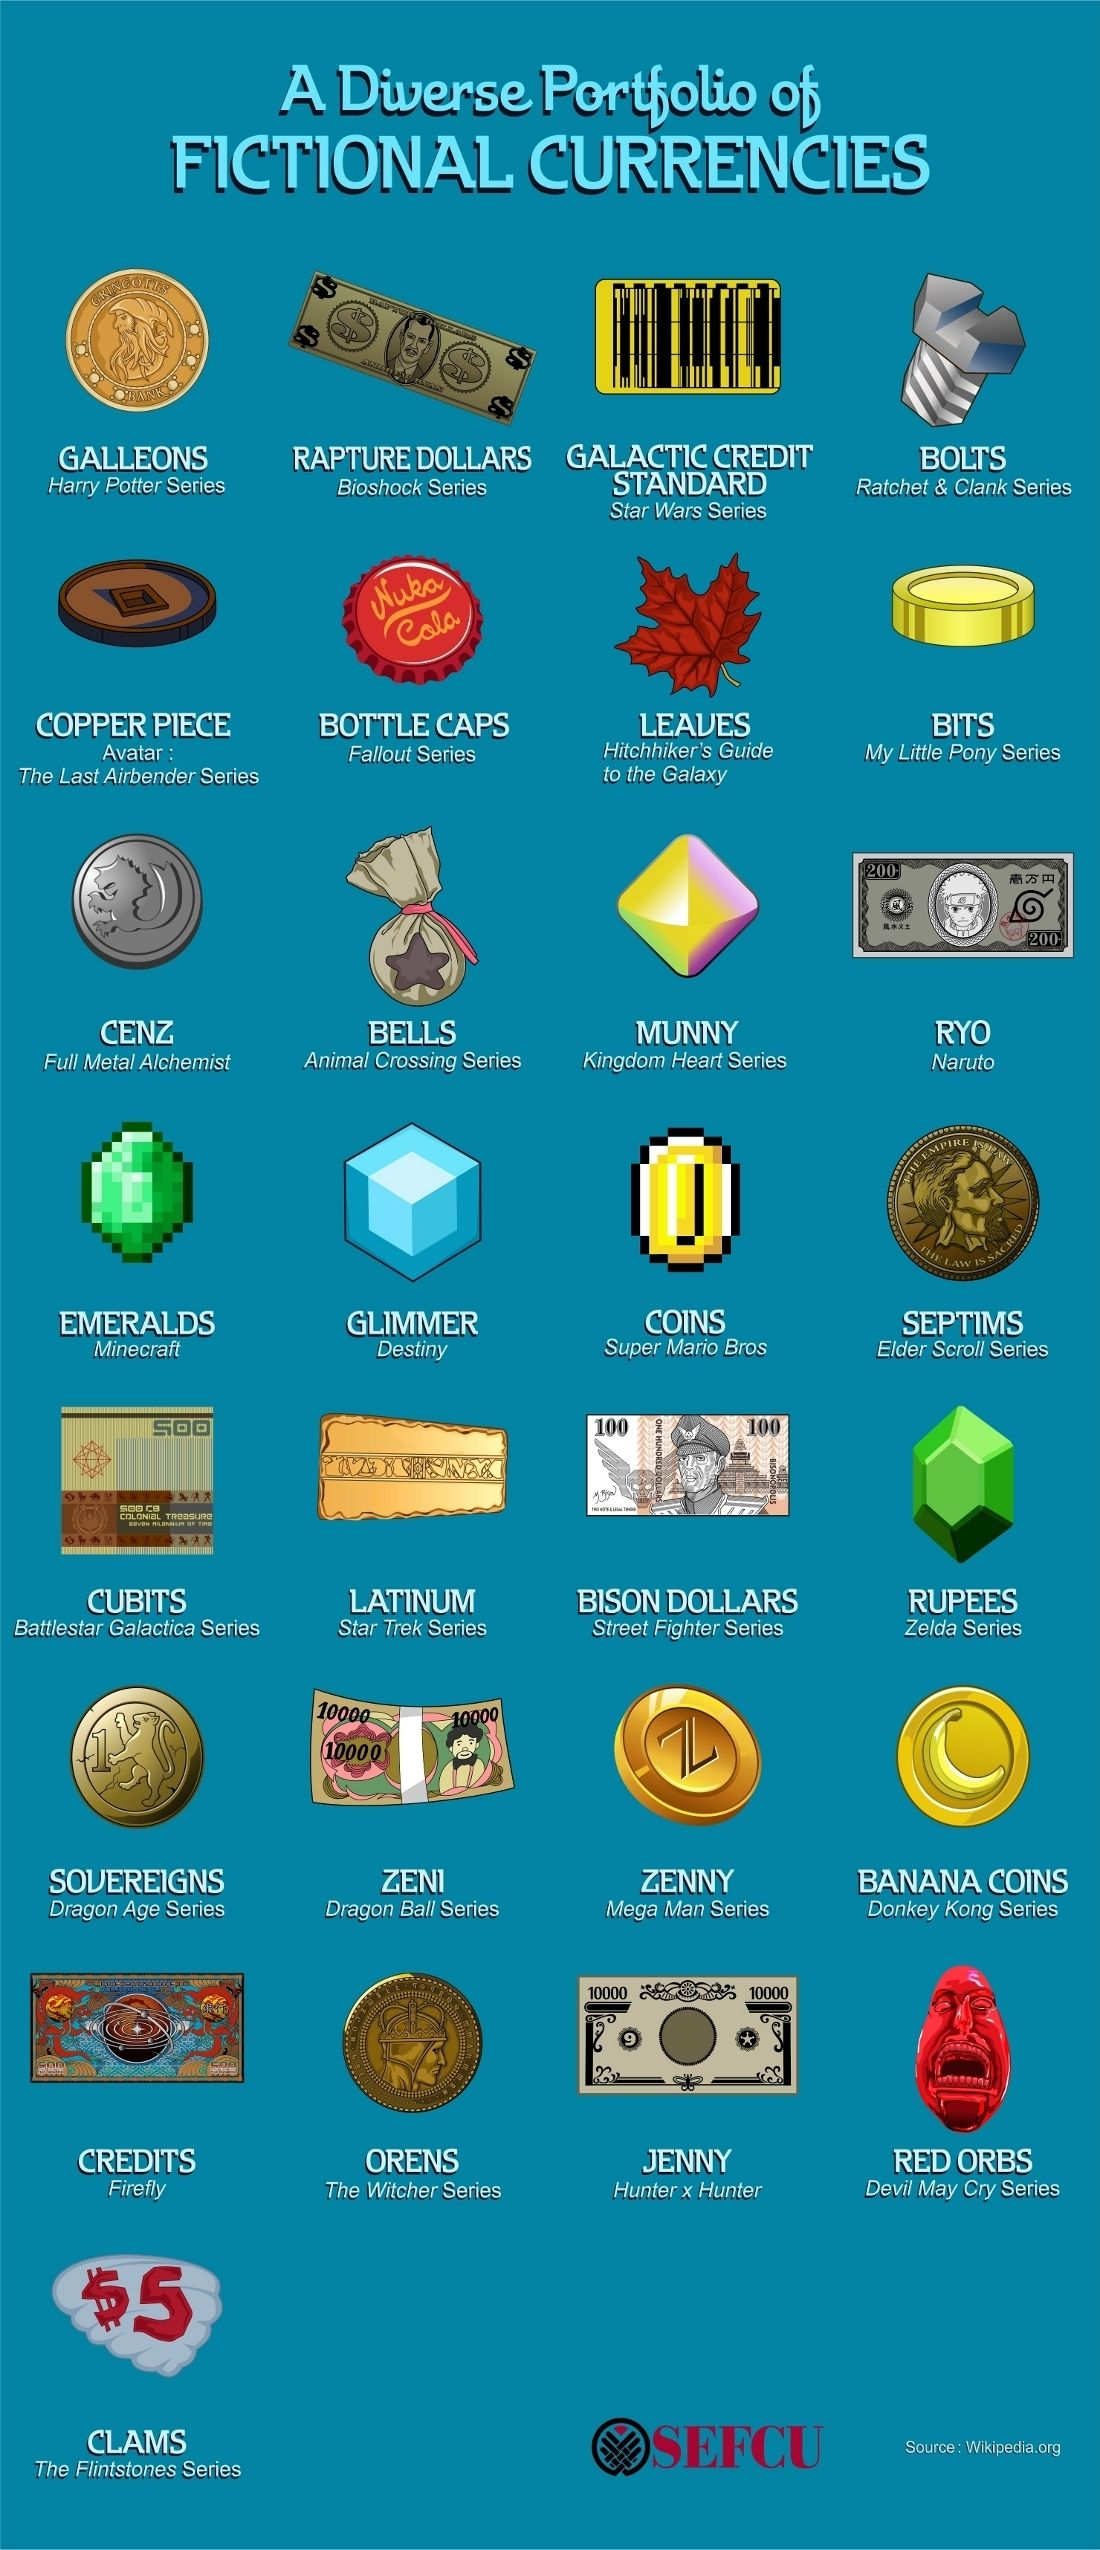 A Diverse Portfolio of Fictional Currencies